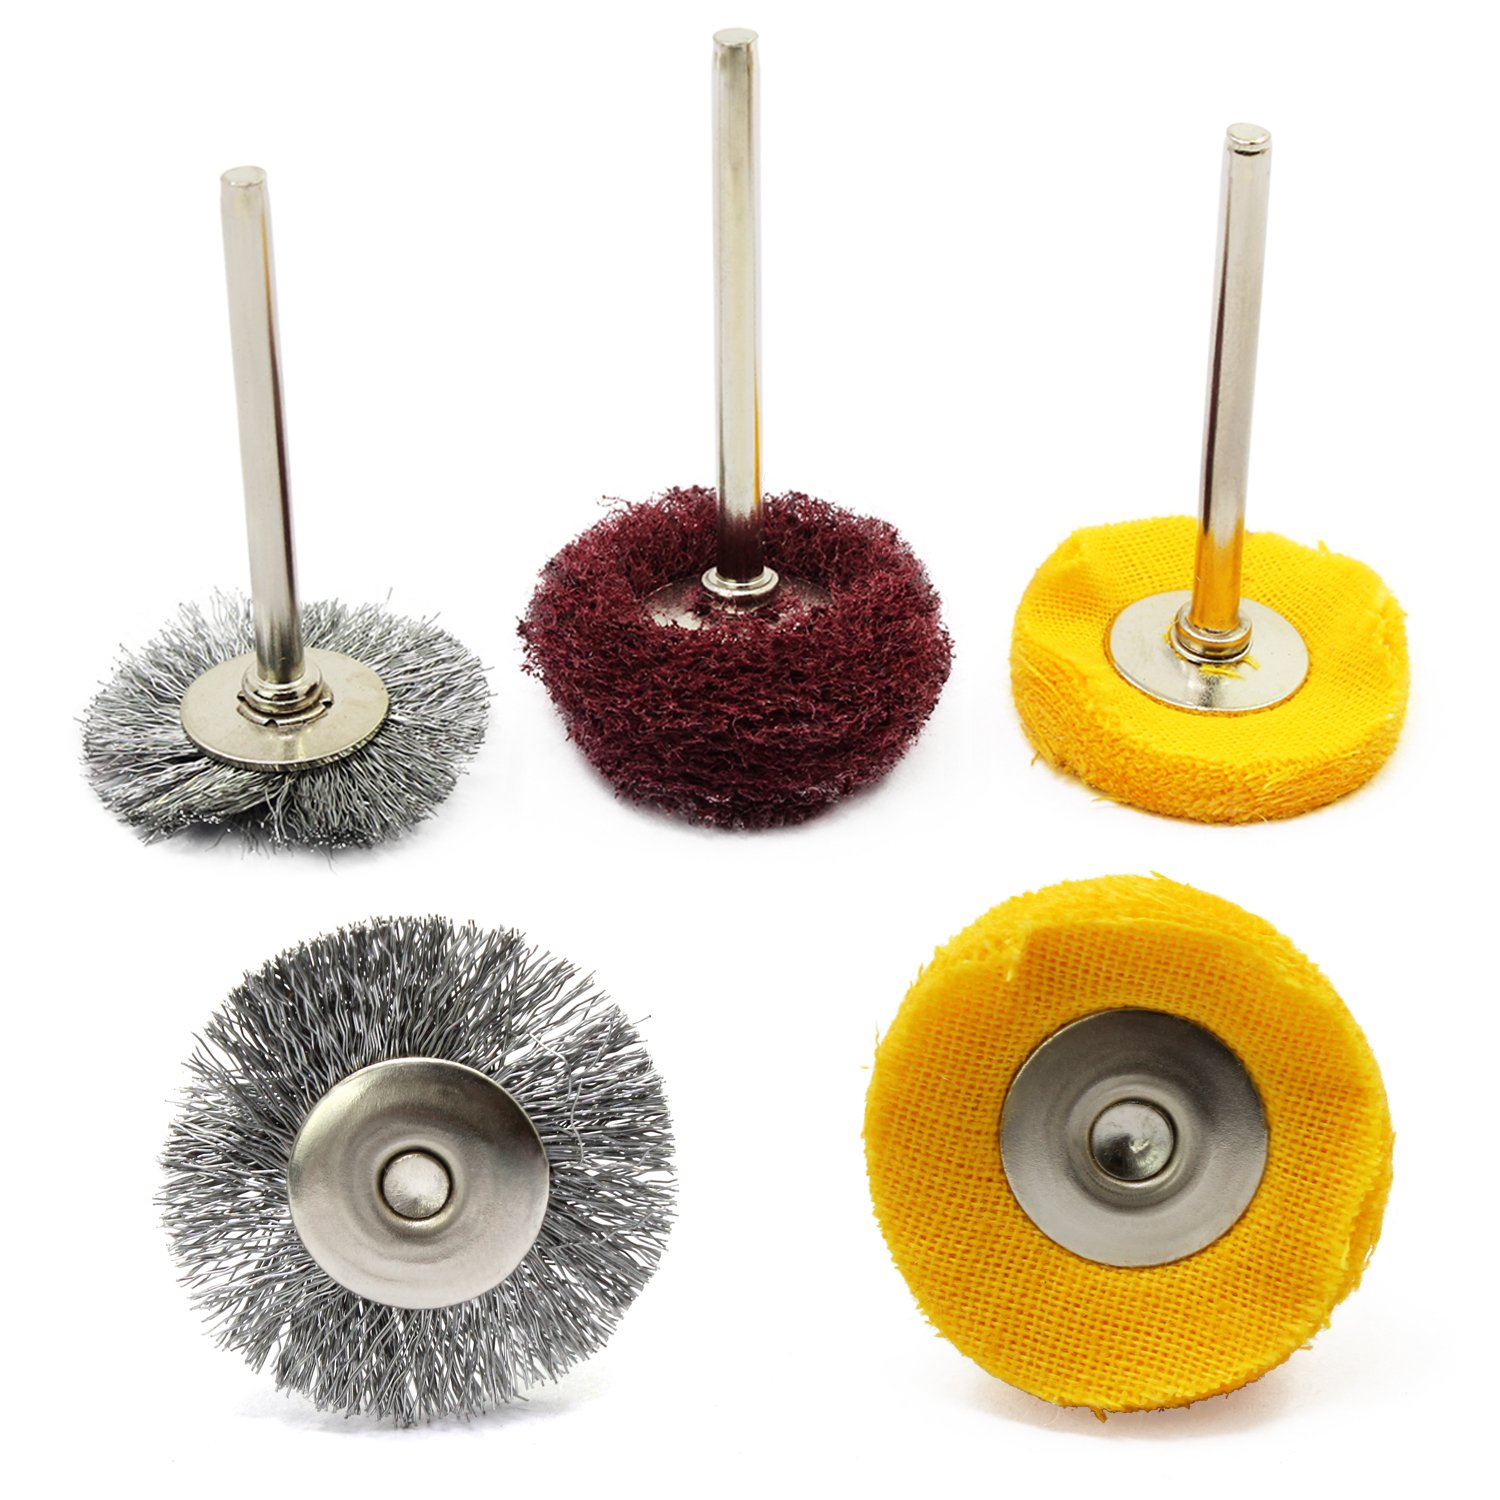 WiMas 30PCS Polishing Pad Abrasive Buffing Wheel Brushes Mixed Set Steel Wire Brush Wool Wheels for Dremel Rotary Tool by WiMas (Image #4)